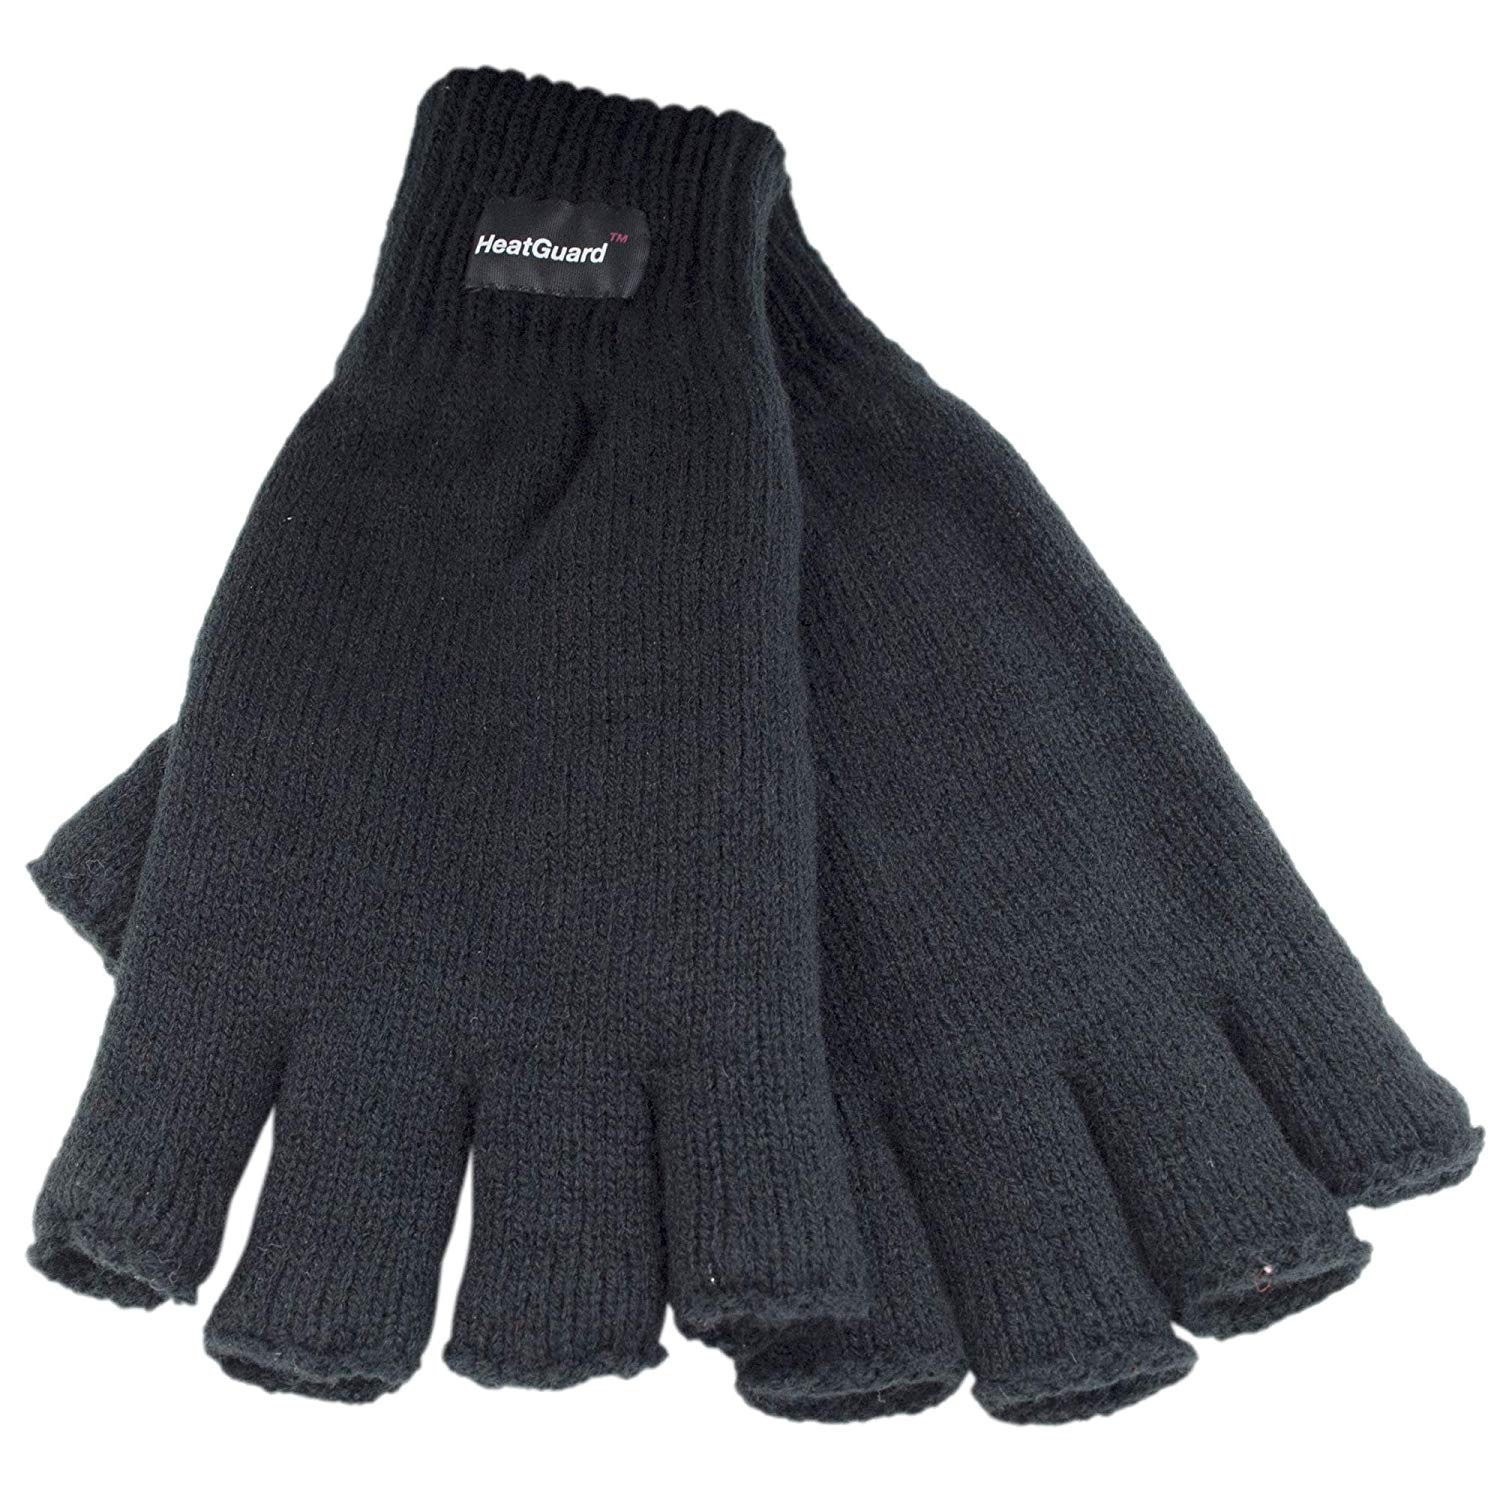 OCTAVE/® Kids Wrist Warmers Fingerless Gloves Keep Your Hands Warm and Fingers Free